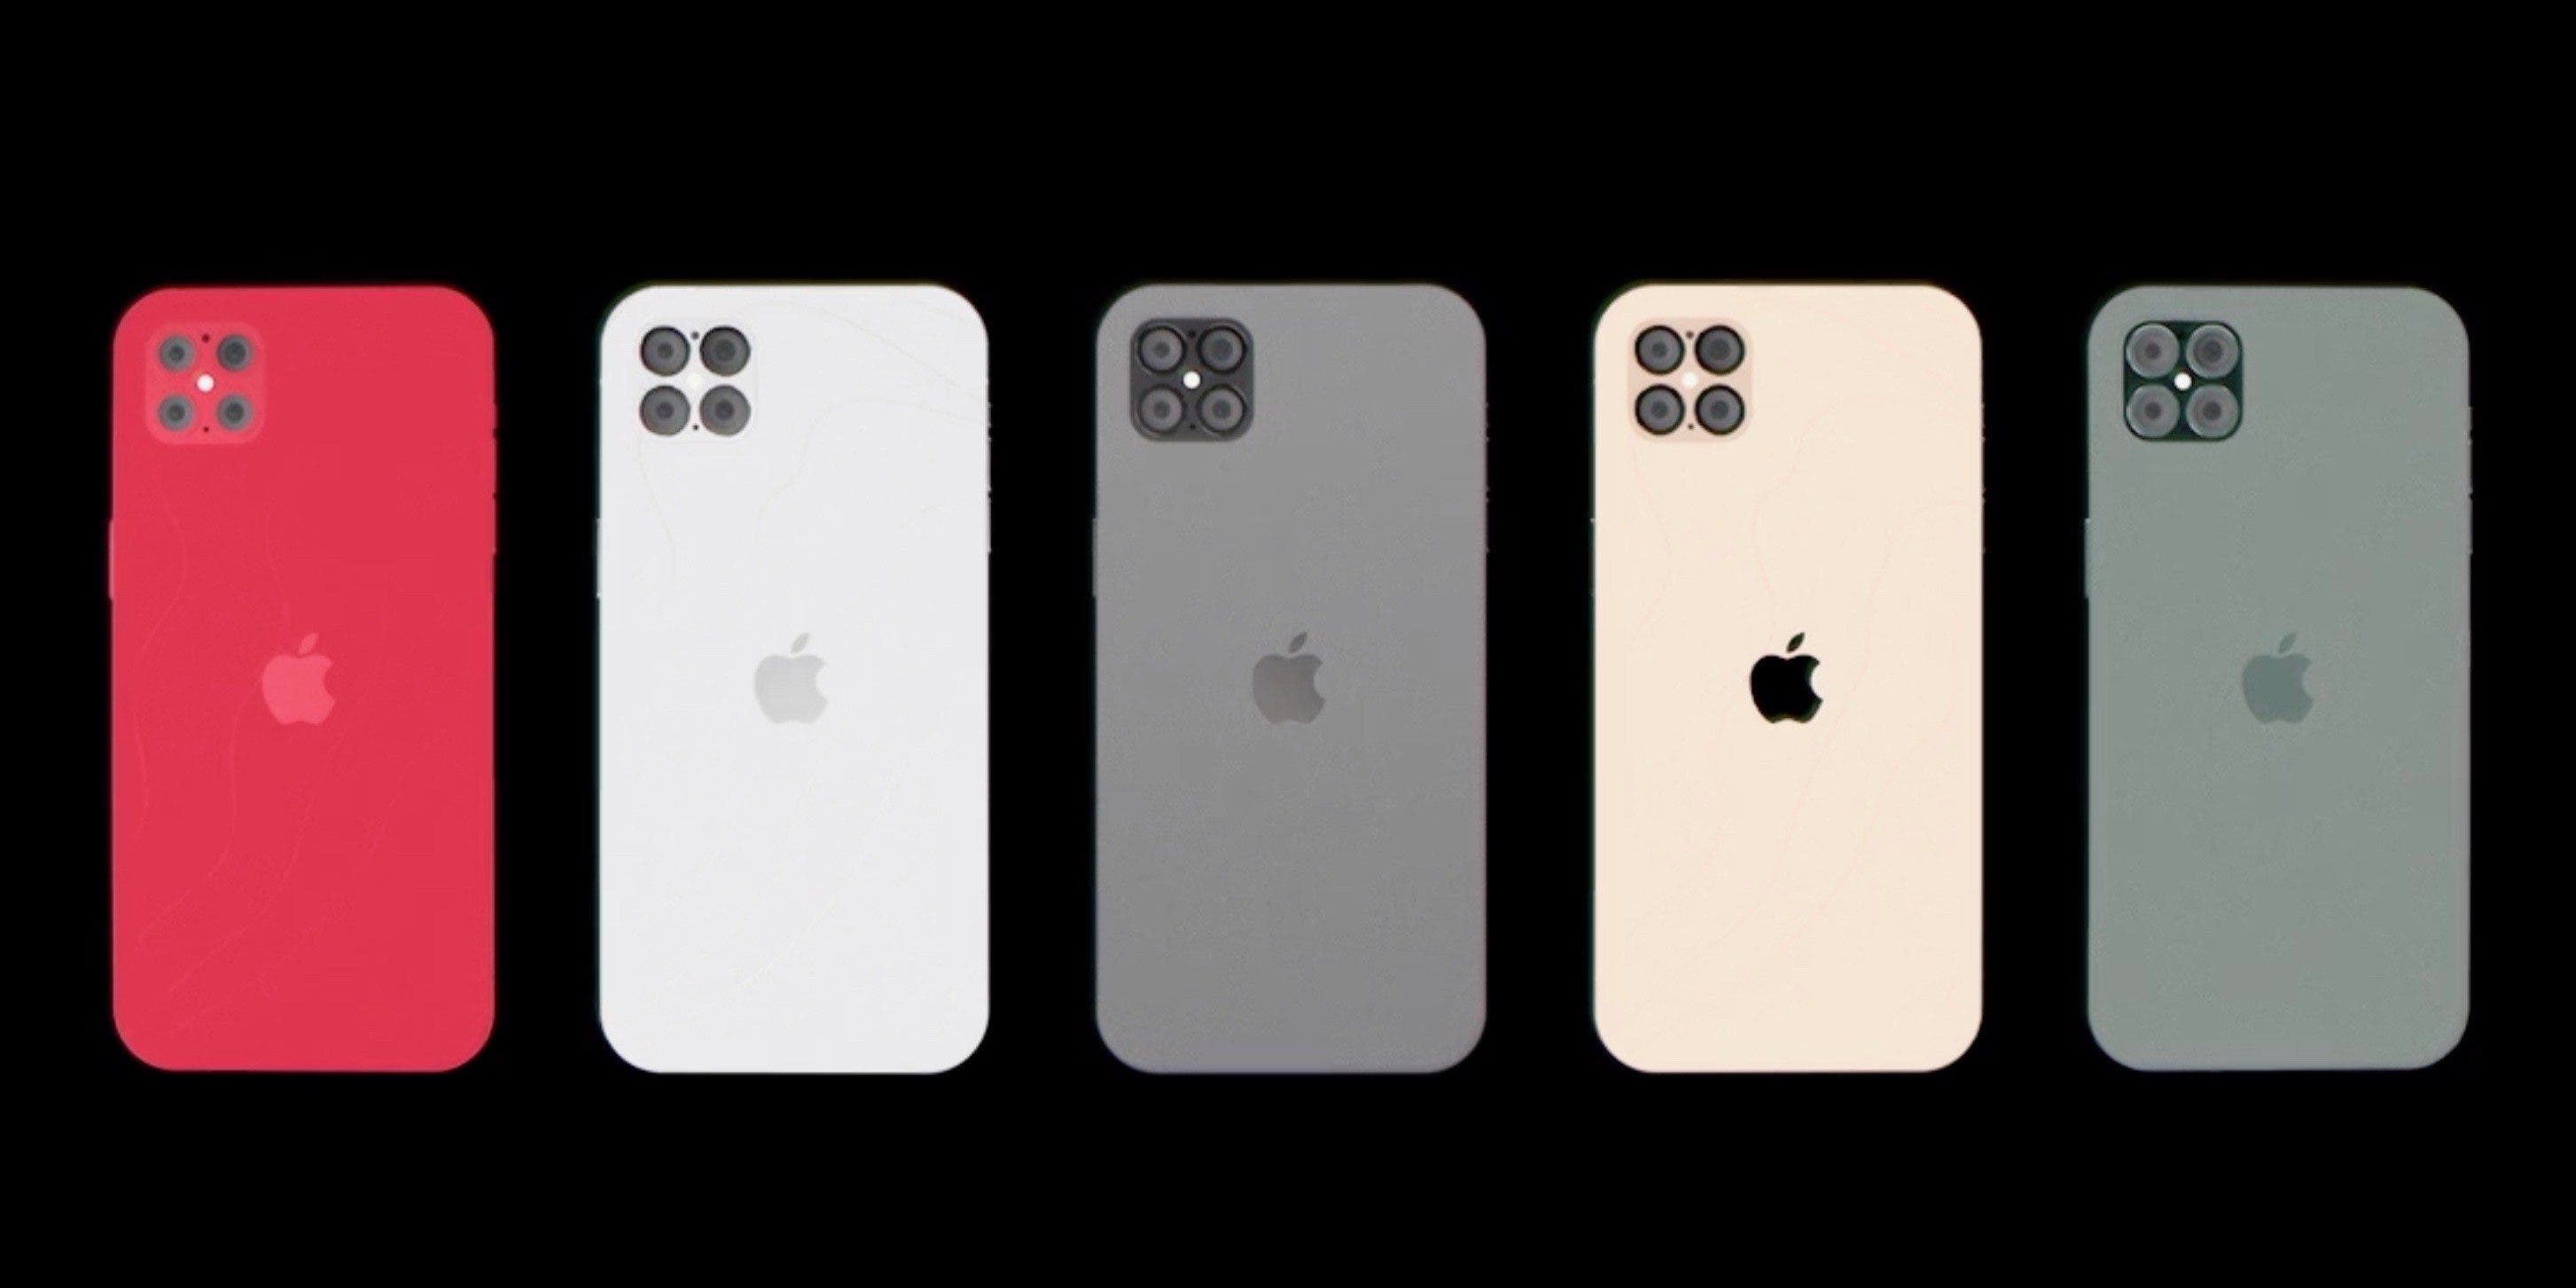 iPhone 12 Pro design will be similar to iPhone 4 ...